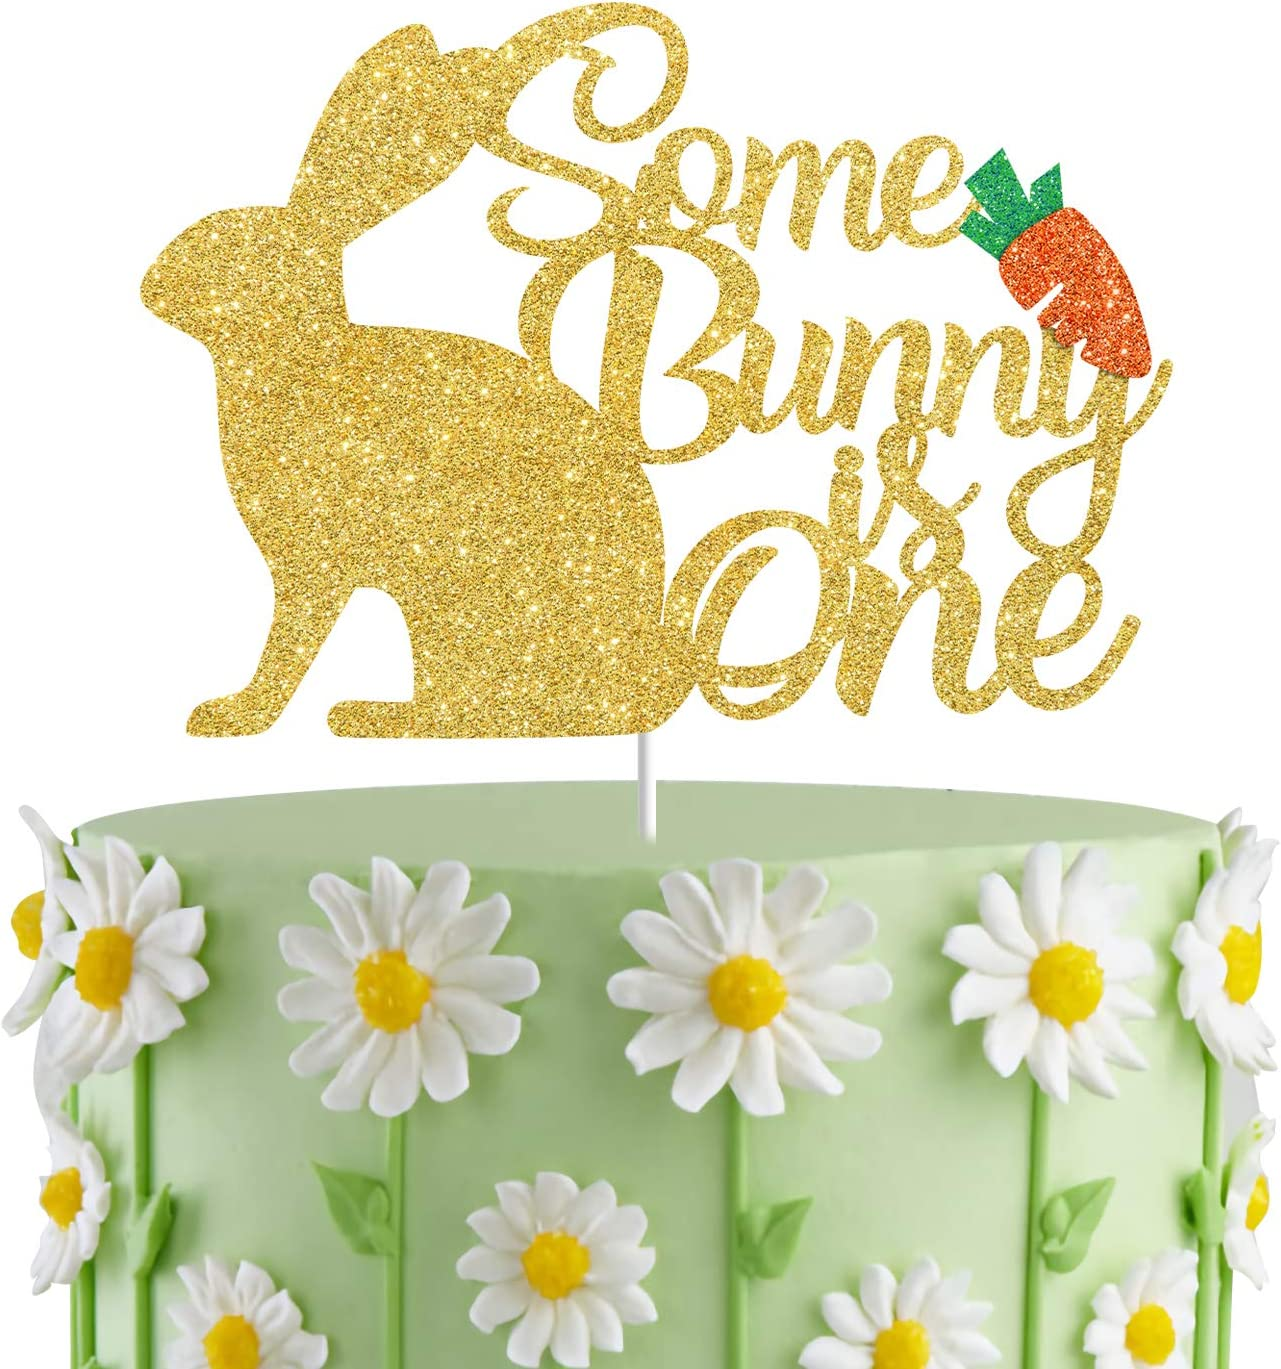 Some Bunny Is One Cake Topper,Bunny First Birthday Party Cake Decor; Spring Paty Decorations,Bunny Birthday Cake Smash Photo Prop